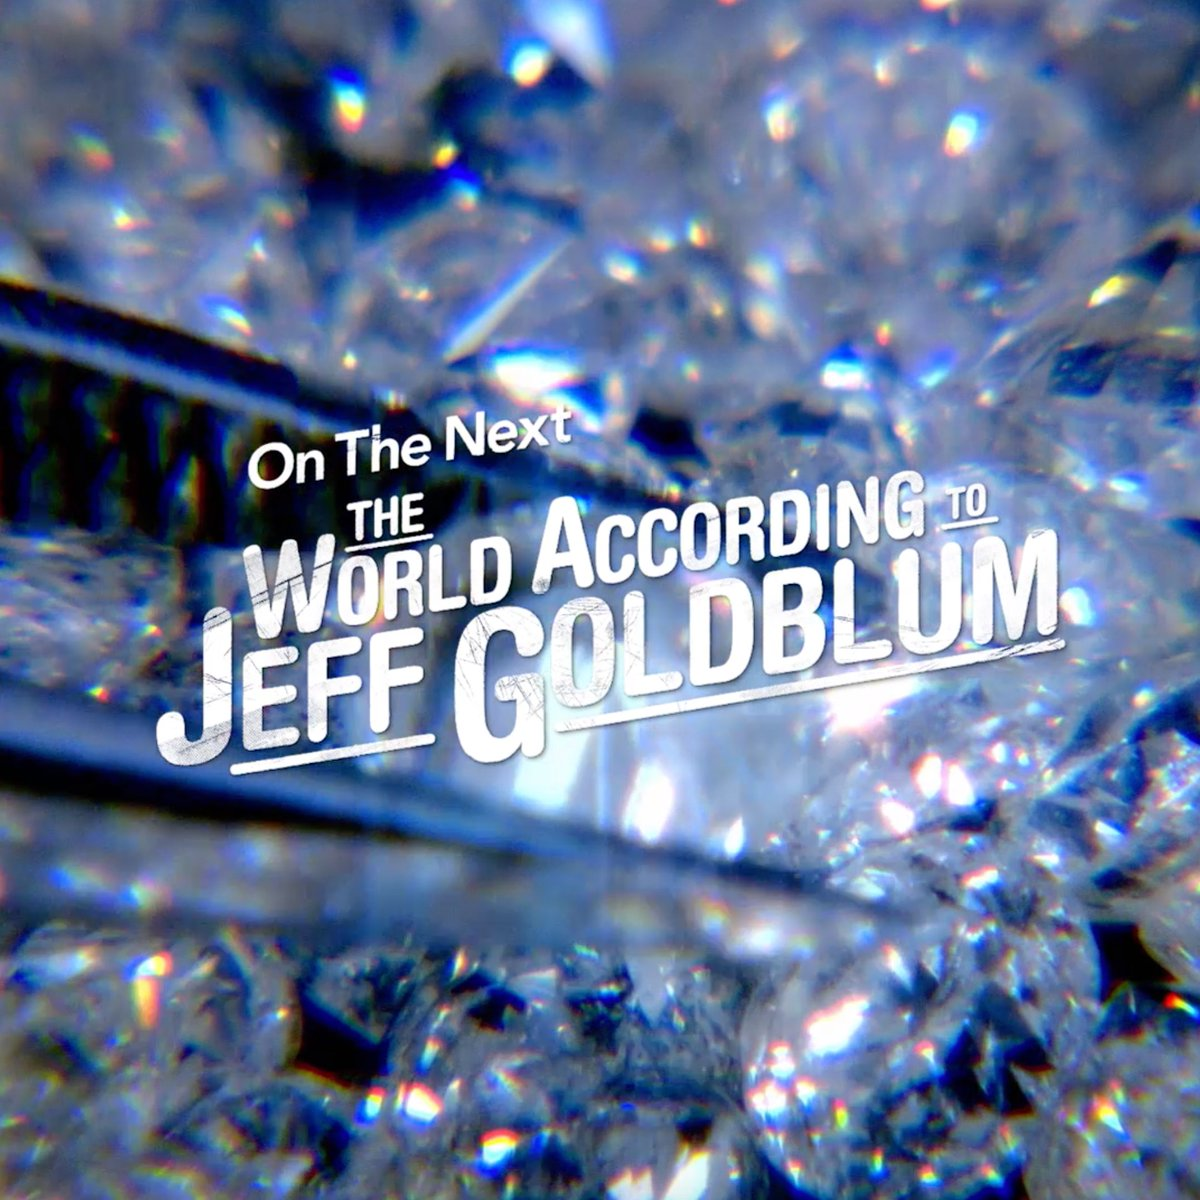 💎 Diamonds are a Goldblums best friend 💎 The finale of #TheWorldAccordingToJeffGoldblum debuts tomorrow on #DisneyPlus!